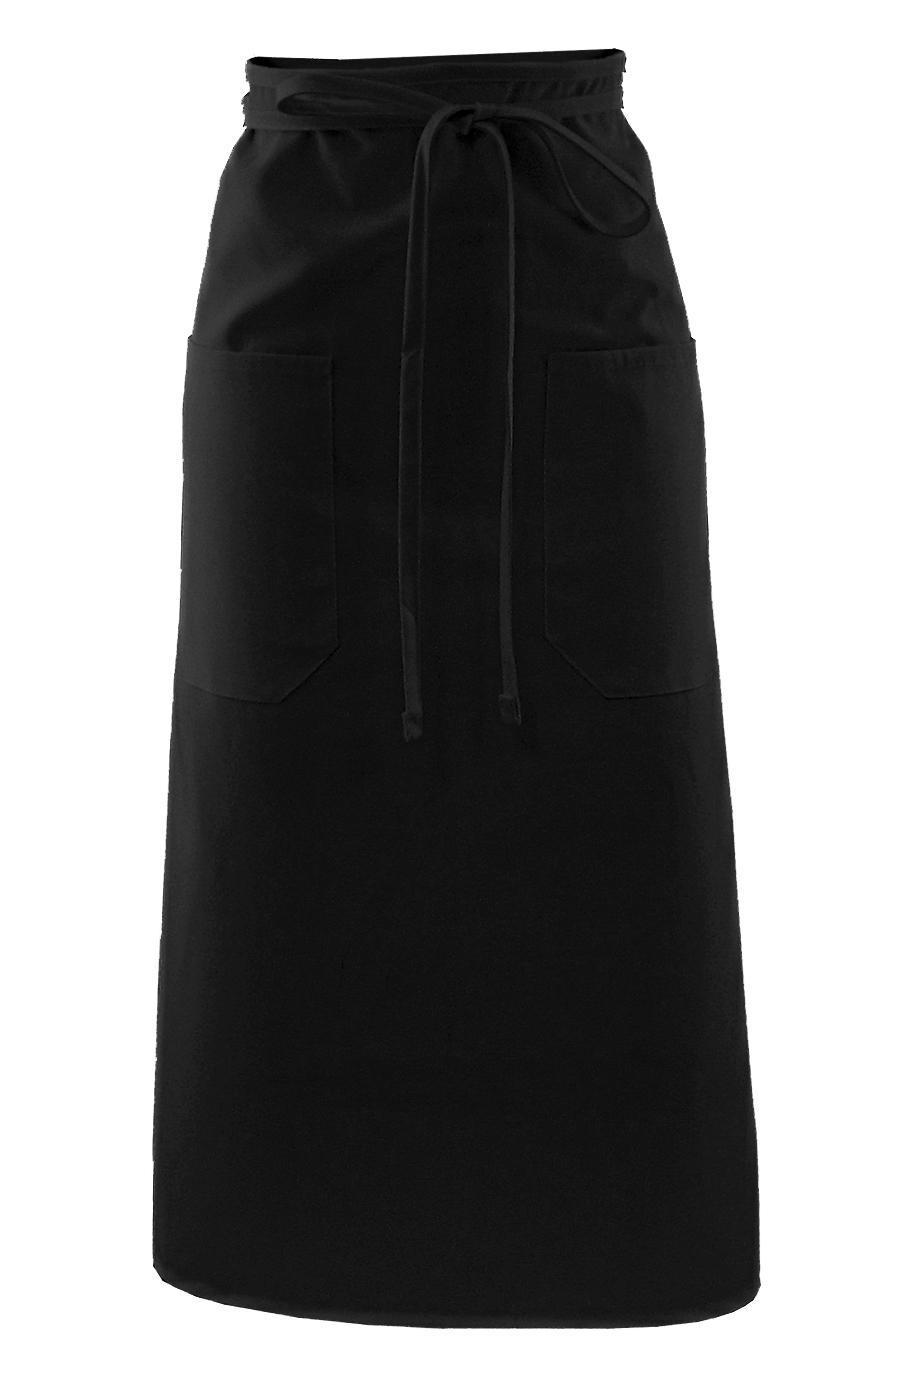 Black Long Bistro Apron (2 Pockets)